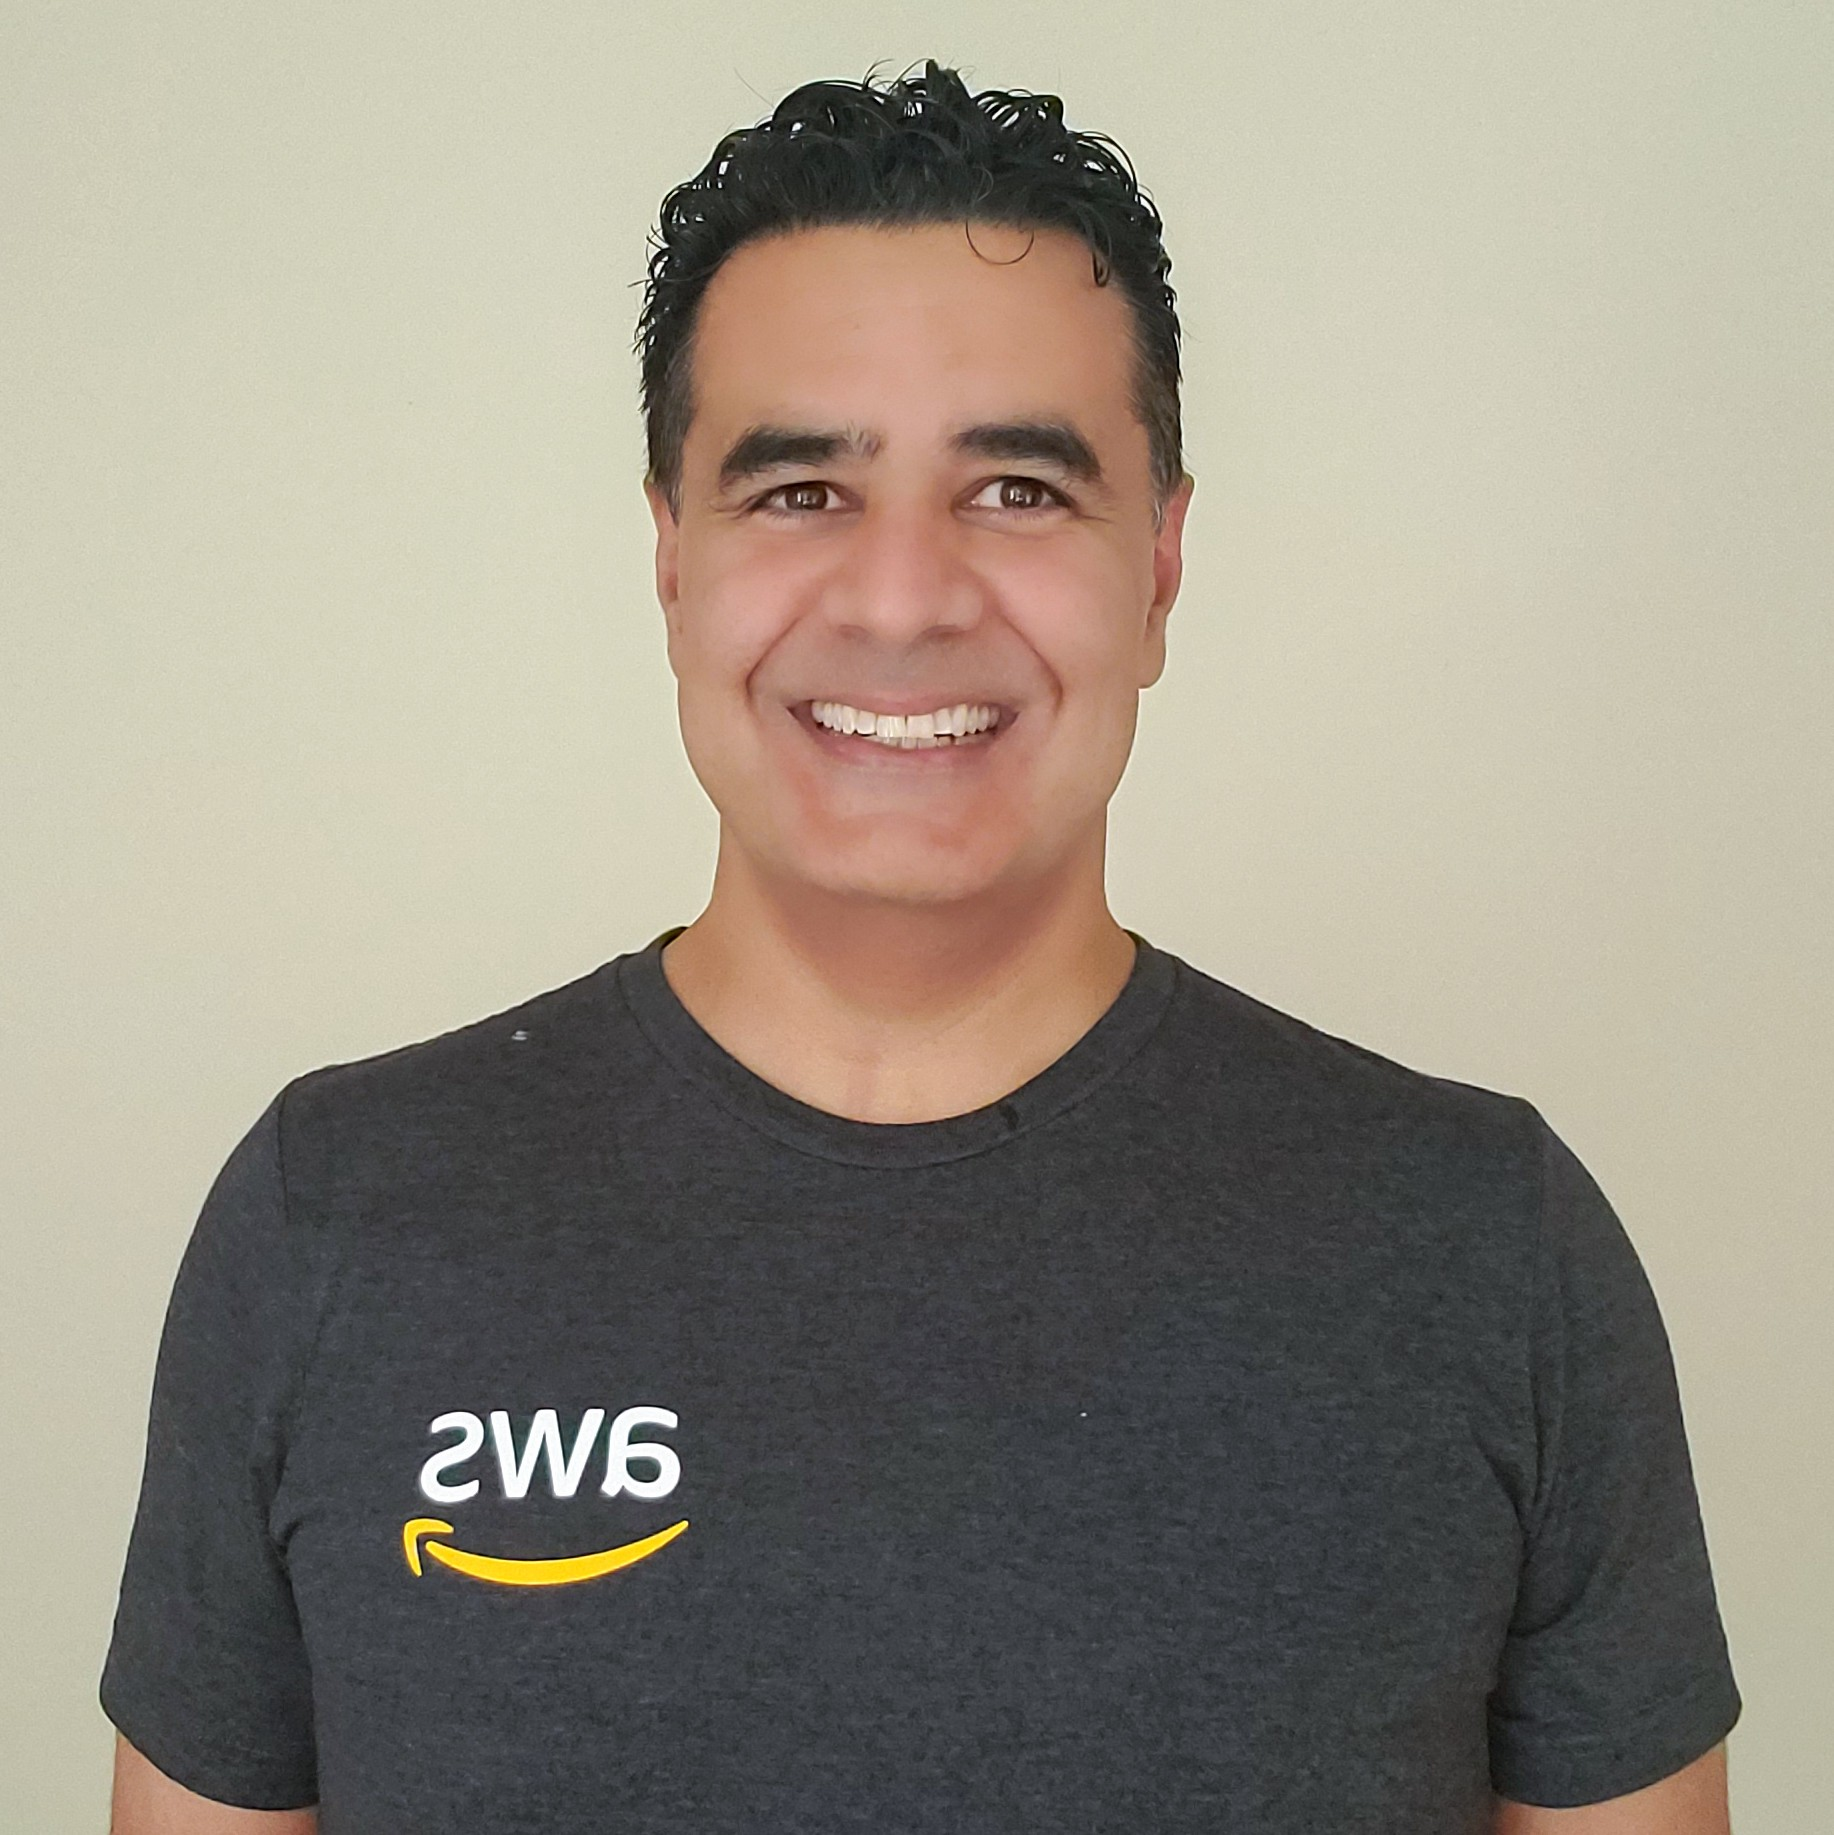 I joined Amazon Web Services and I grin like an idiot…